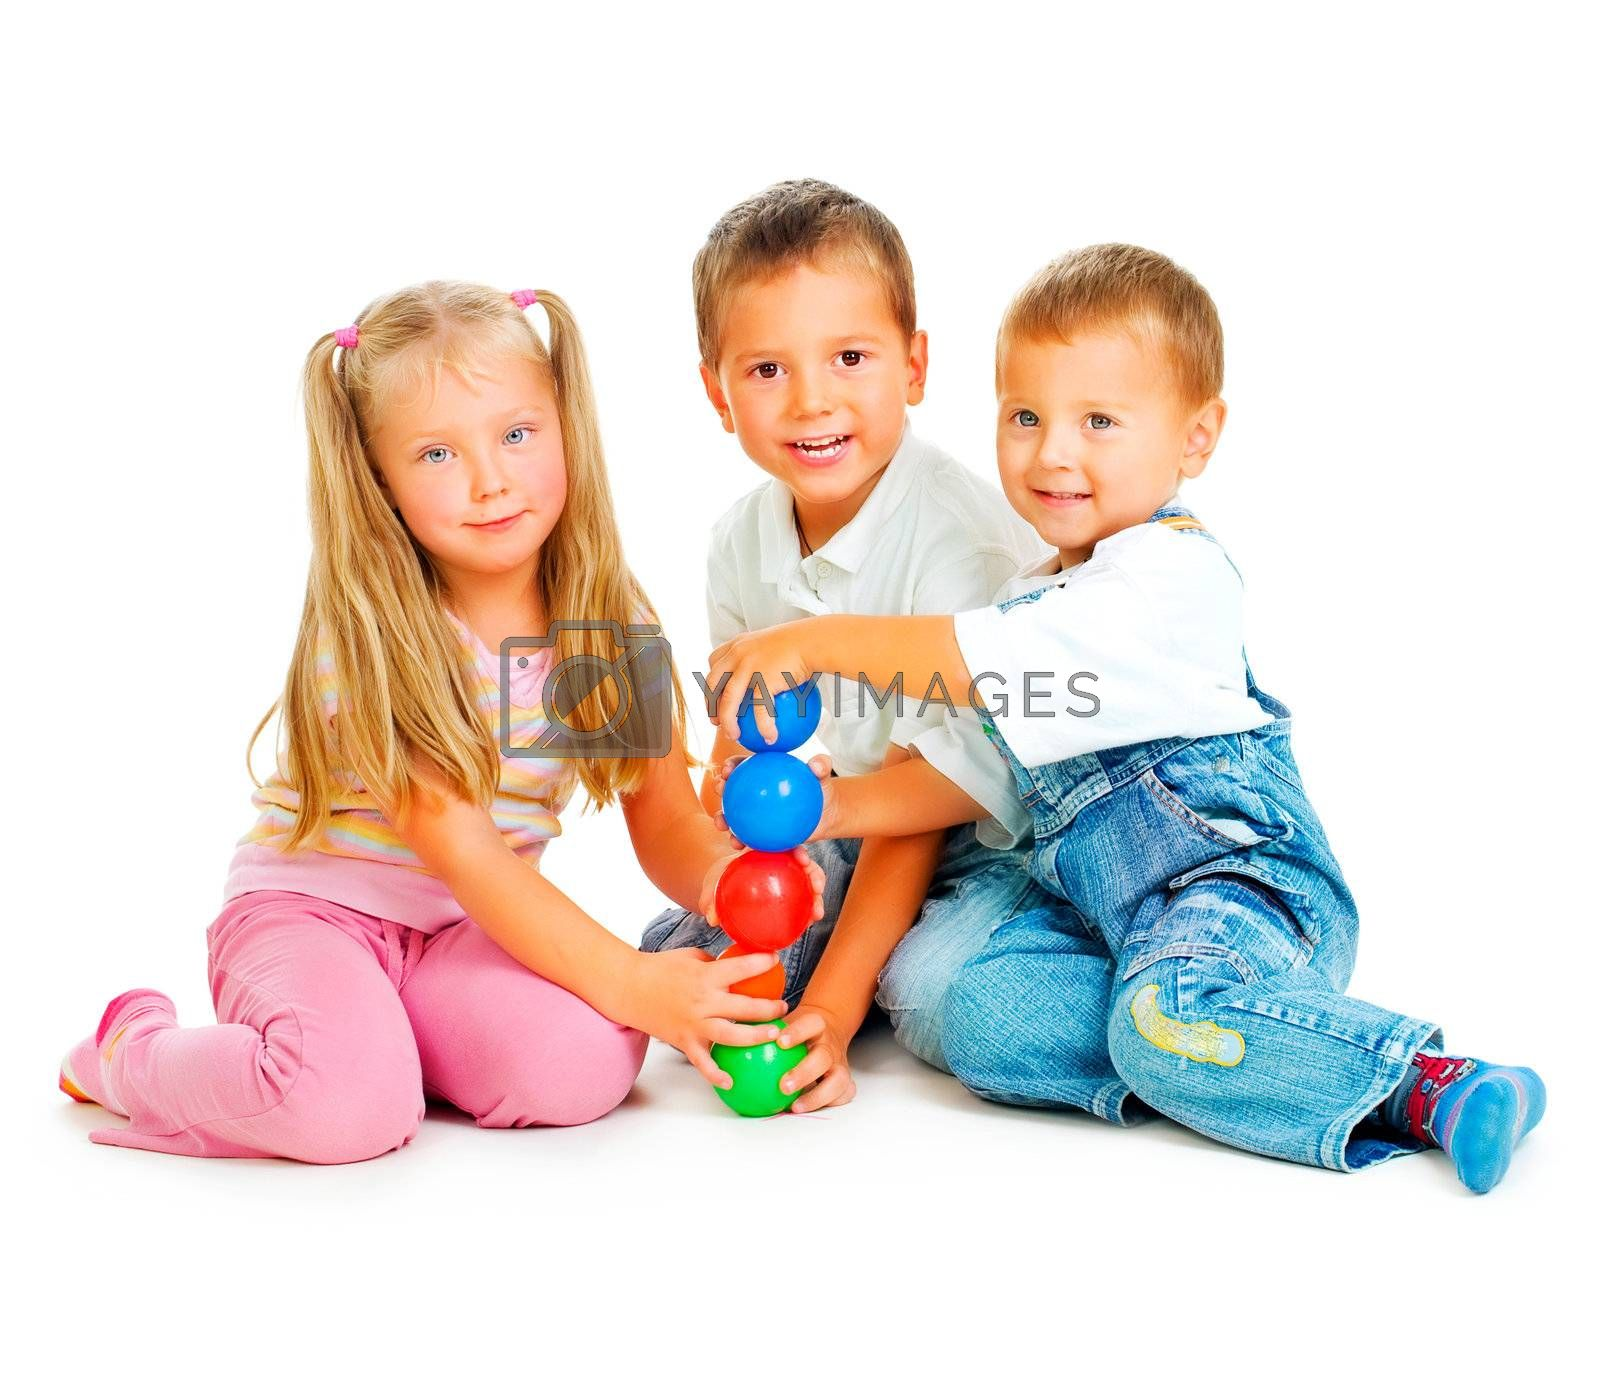 Children playing on the floor.Educational games for kids by Subbotina Anna